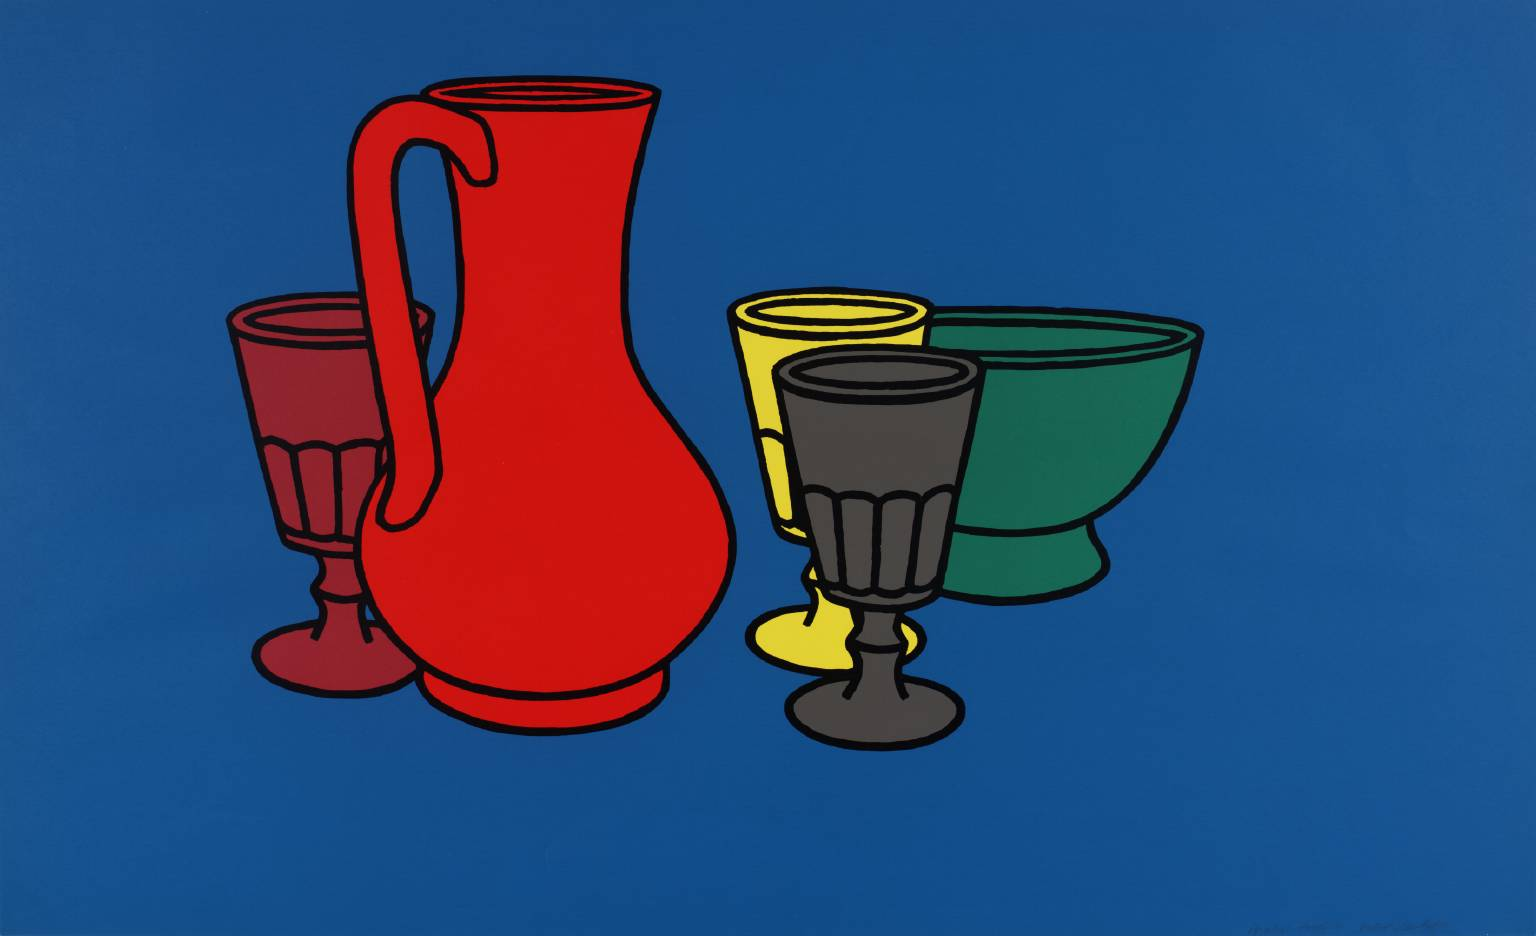 Patrick Caulfield ART amp ARTISTS Patrick Caulfield part 1